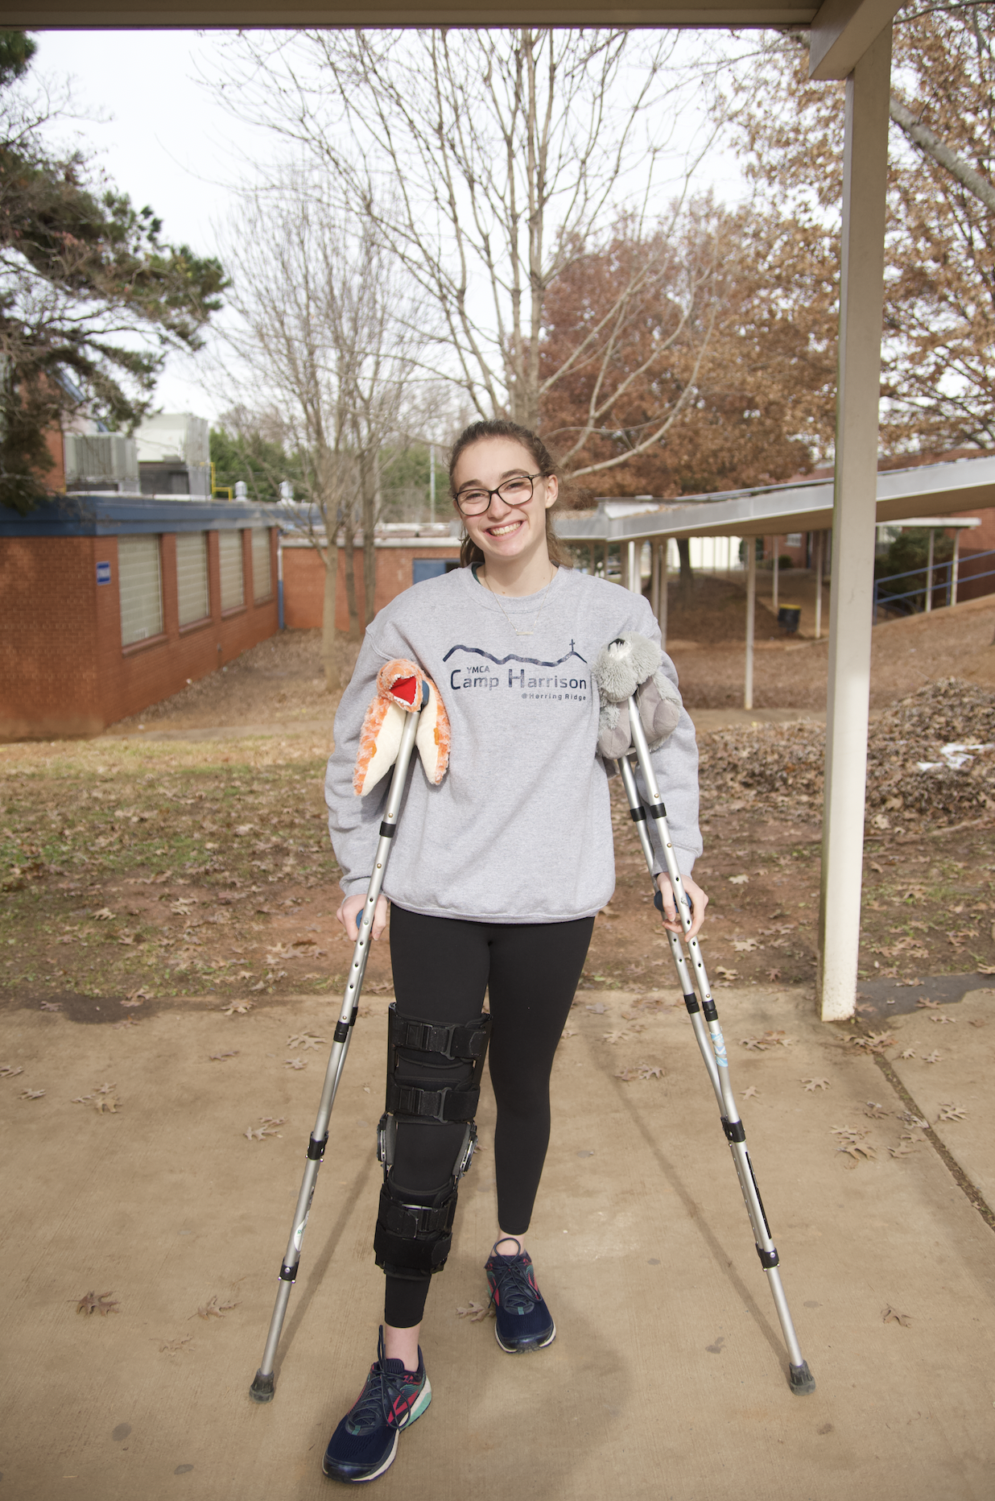 Shober tore her ACL after one of her soccer games. She is currently recovering but has stayed positive throughout it all.